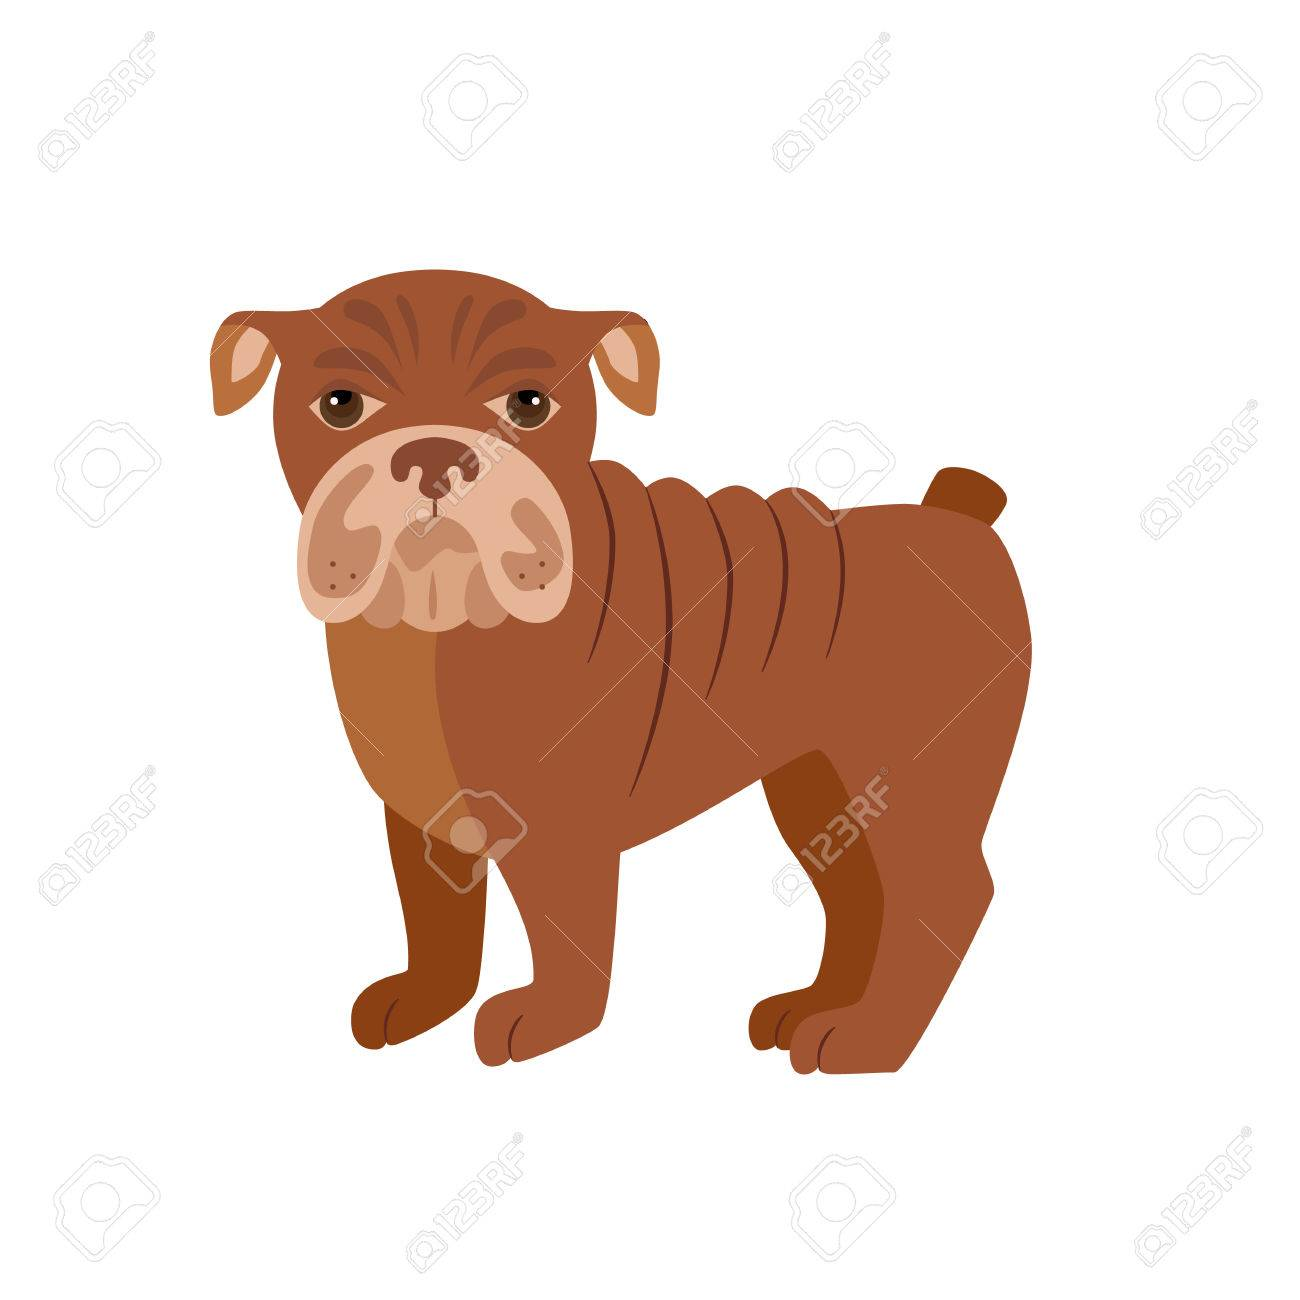 Simple Bulldog Brown Adorable Dog - 55699333-flat-bulldog-pet-illustration-standing-cute-dog-vector-flat-dog-animal-pet-vector-icon-home-cartoon-  Image_499012  .jpg